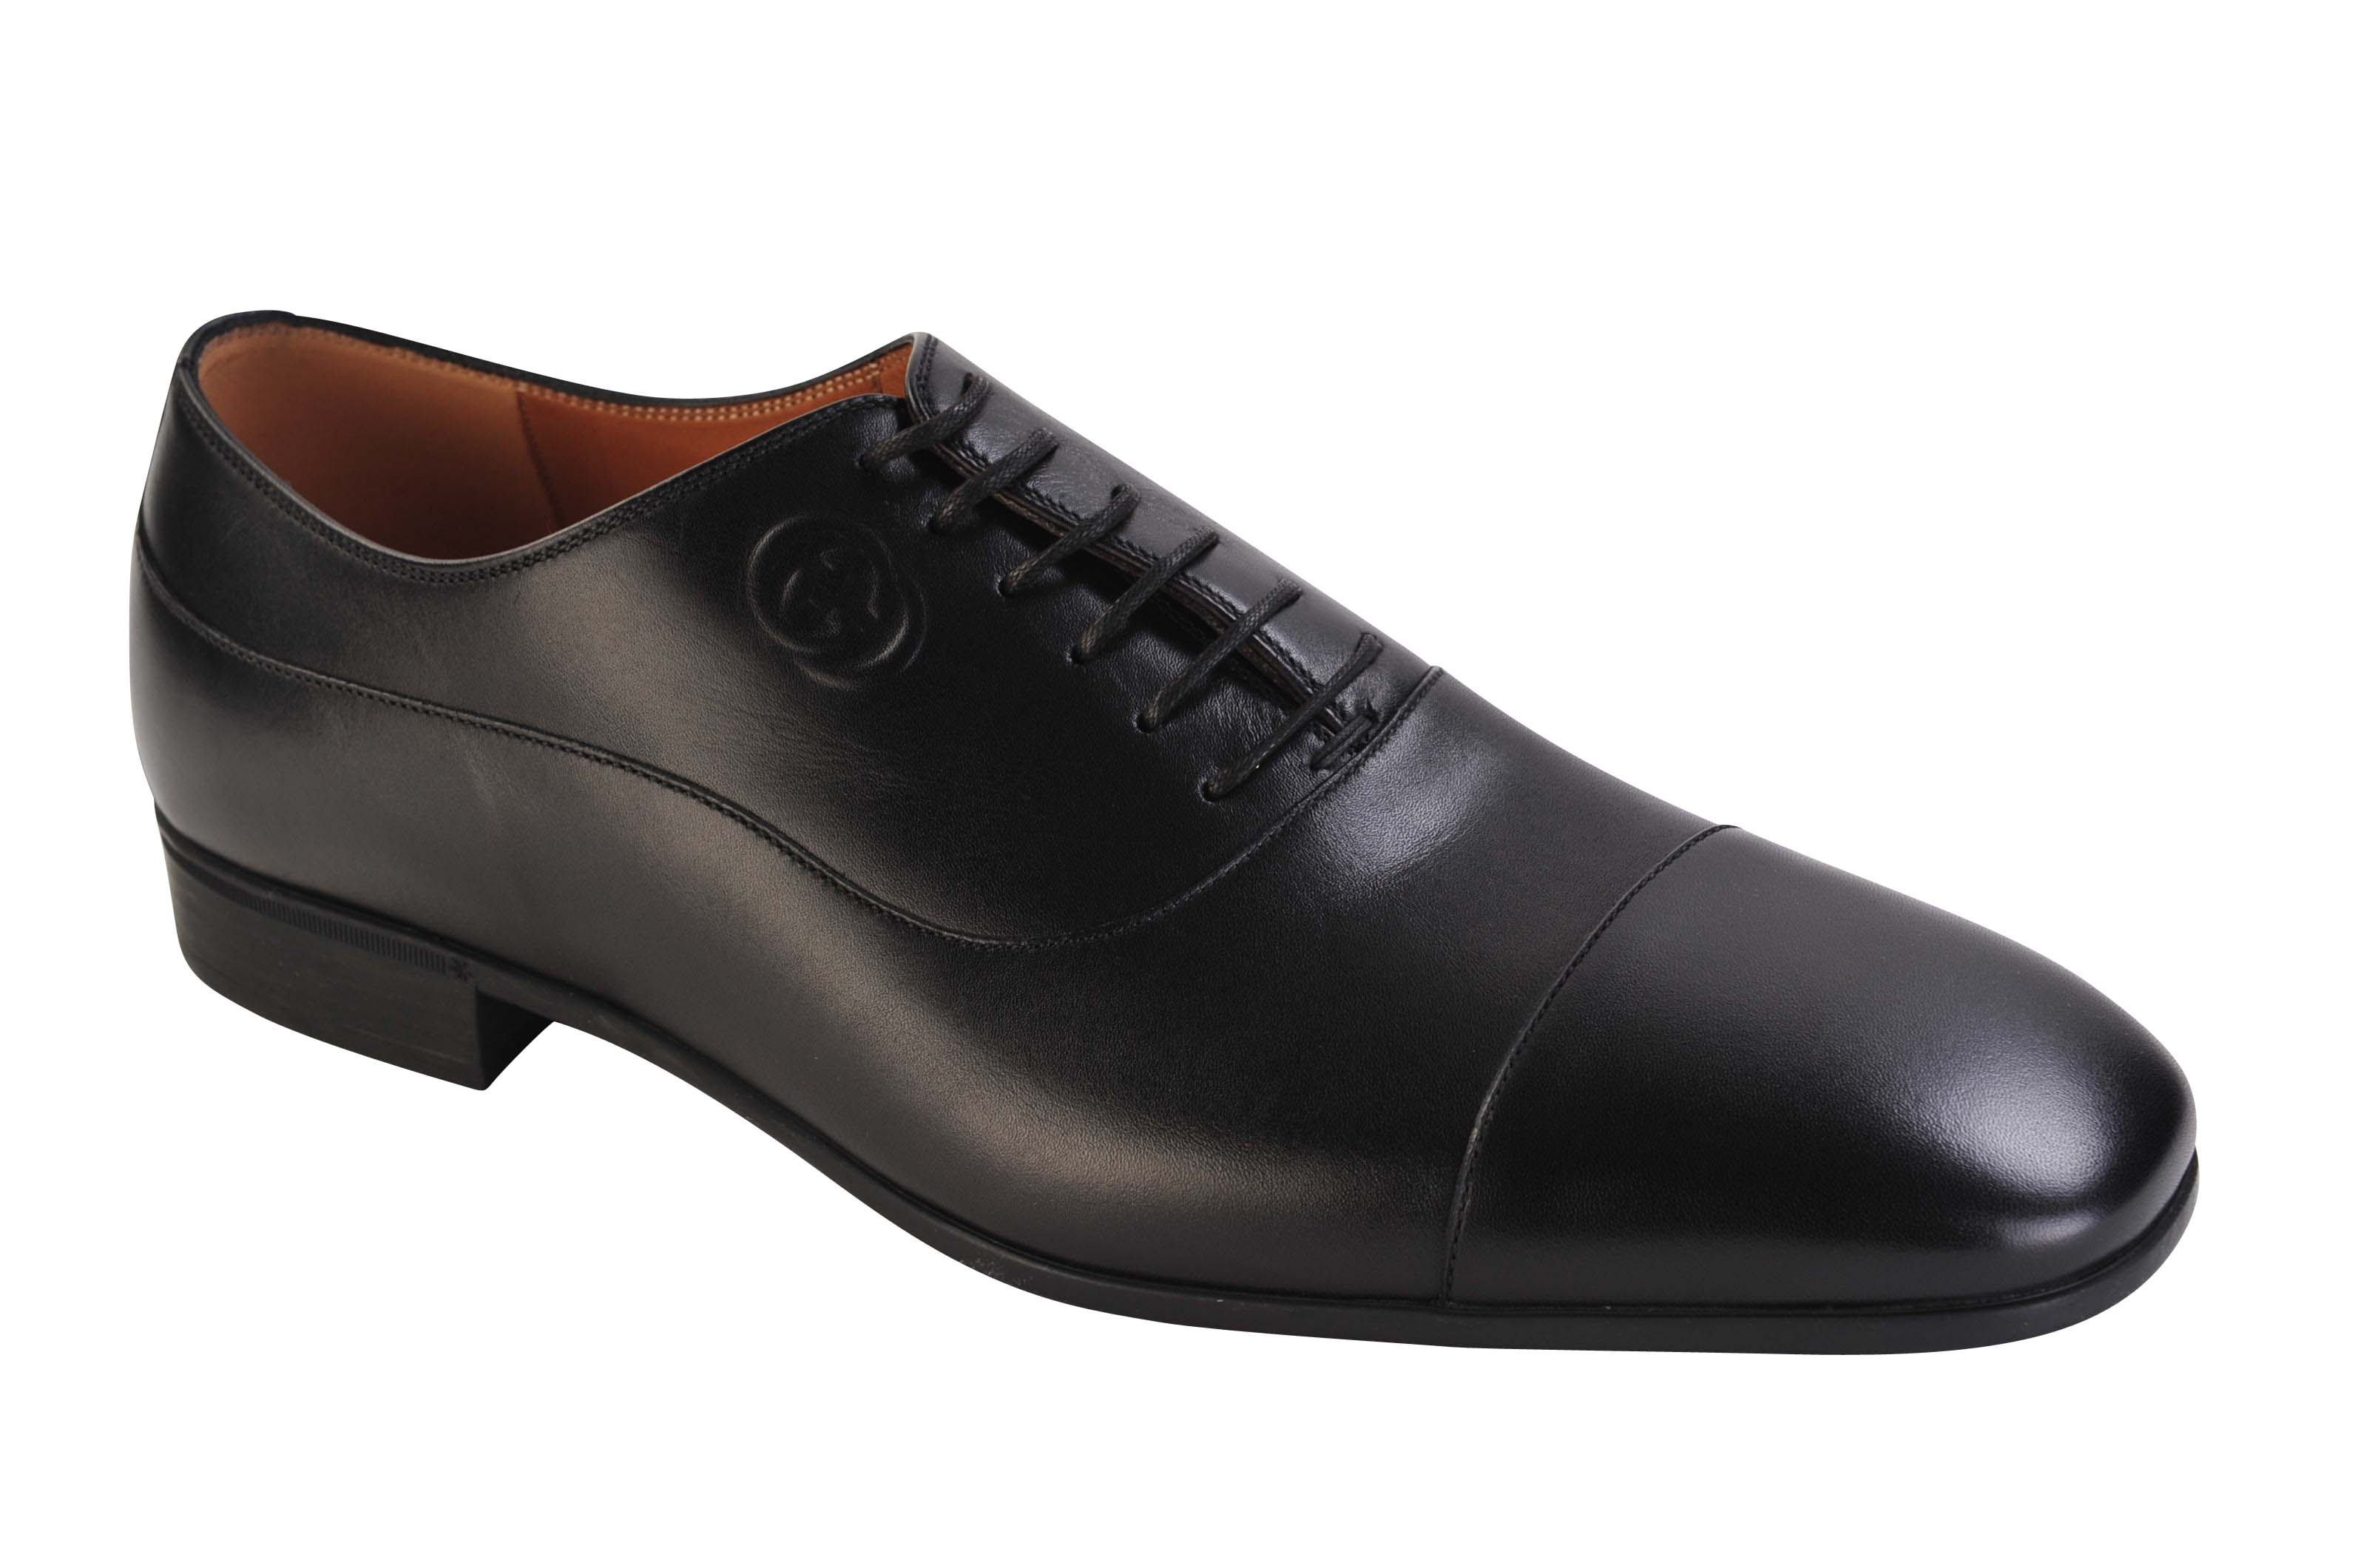 gucci shoes smooth leather 41 oxford black ebay